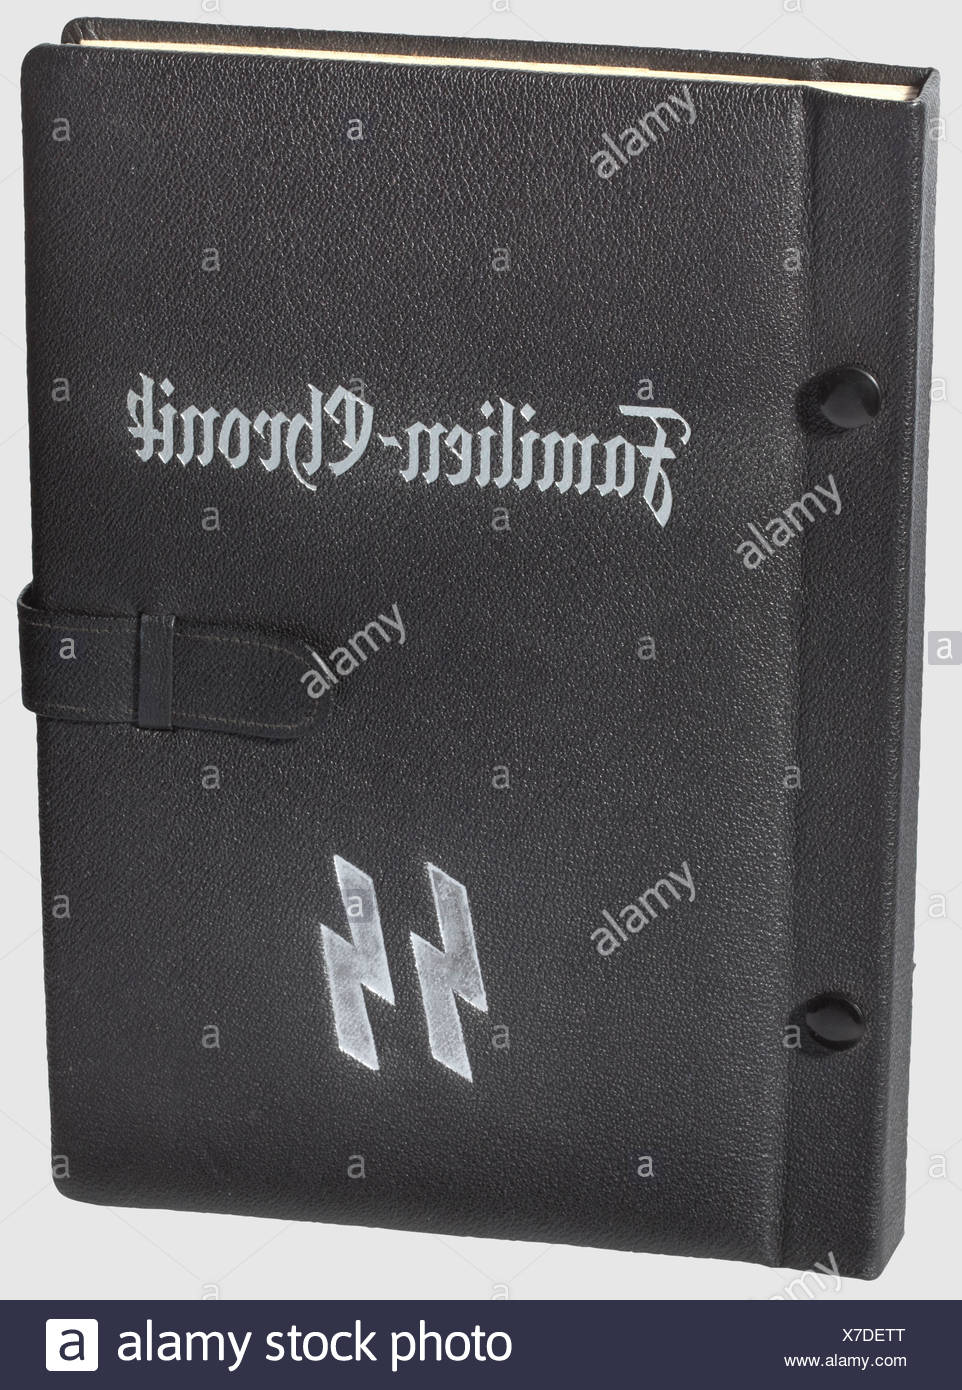 A Schutzstaffel family chronicle, an SS showcase album A well preserved blank example of an SS family chronicle with black leather cover and silver stampings. The runes have been lightly re-touched in silver, historic, historical, 1930s, 1930s, 20th century, Waffen-SS, armed division of the SS, armed service, armed services, NS, National Socialism, Nazism, Third Reich, German Reich, Germany, military, militaria, utensil, piece of equipment, utensils, object, objects, stills, clipping, clippings, cut out, cut-out, cut-outs, fascism, fascistic, National Socialist, Additional-Rights-Clearences-NA - Stock Image